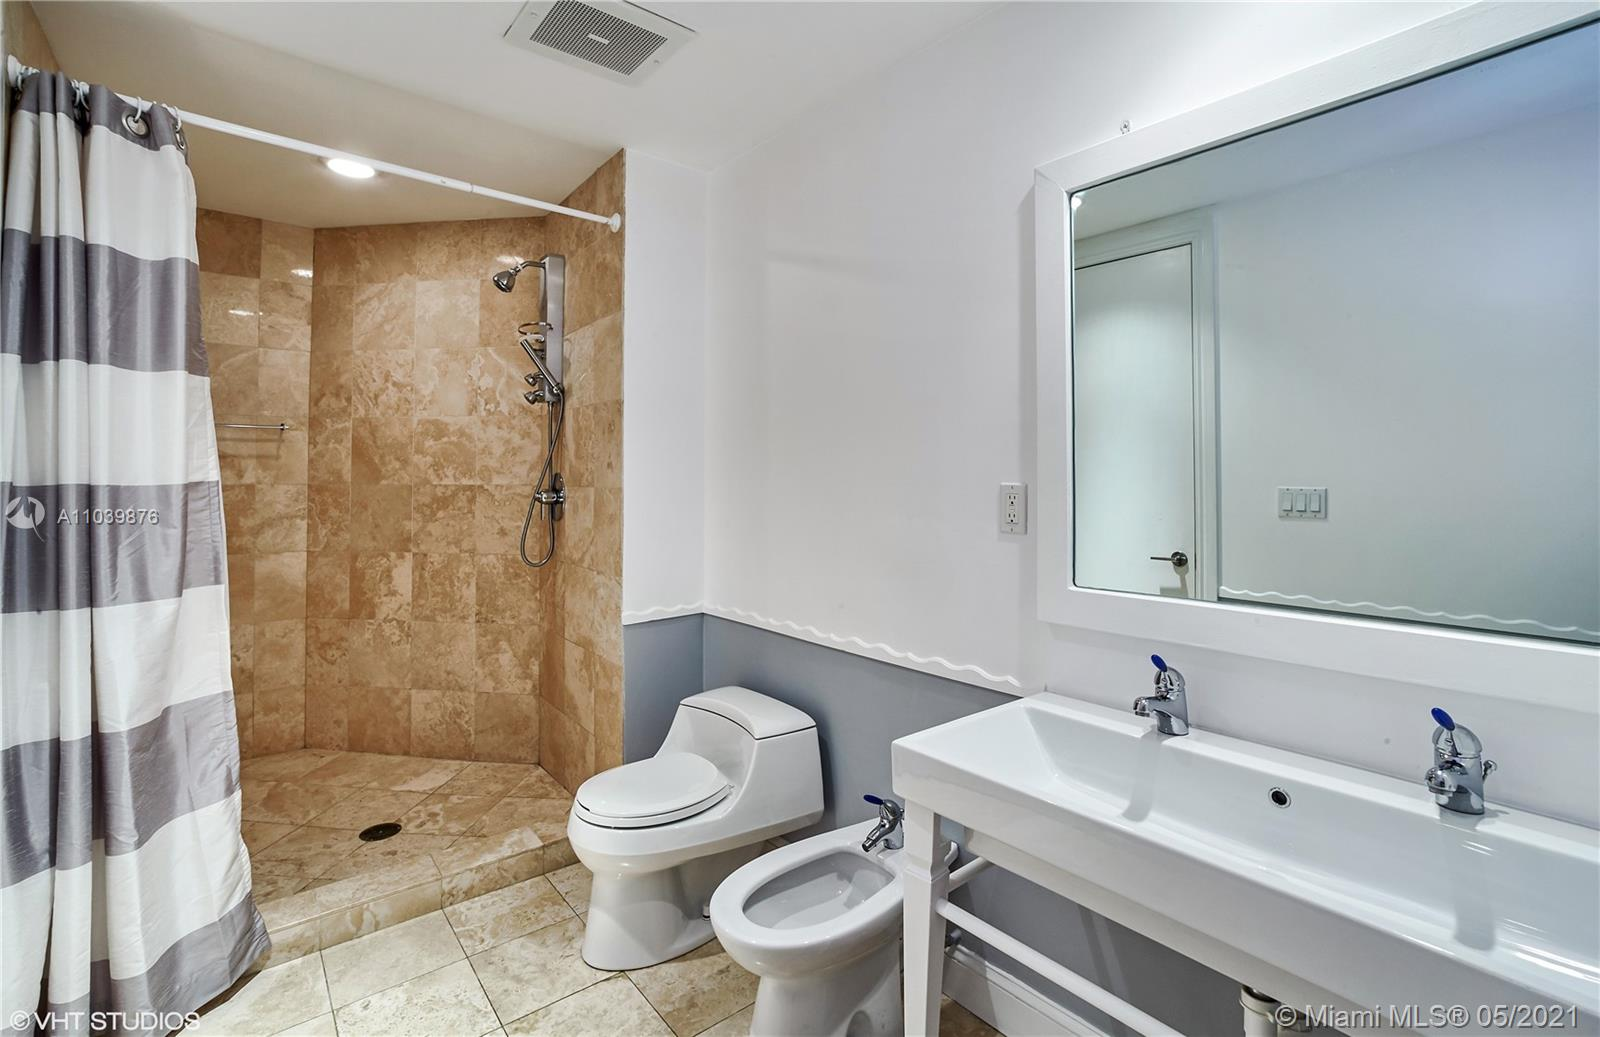 Photo of 10225 Collins Ave #1703, Bal Harbour, Florida, 33154 - Second bedroom with en-suite bathroom overlooking the beach, Atlantic Ocean, Haulover Inlet and One Bal Harbour/Ritz Carlton Residences.